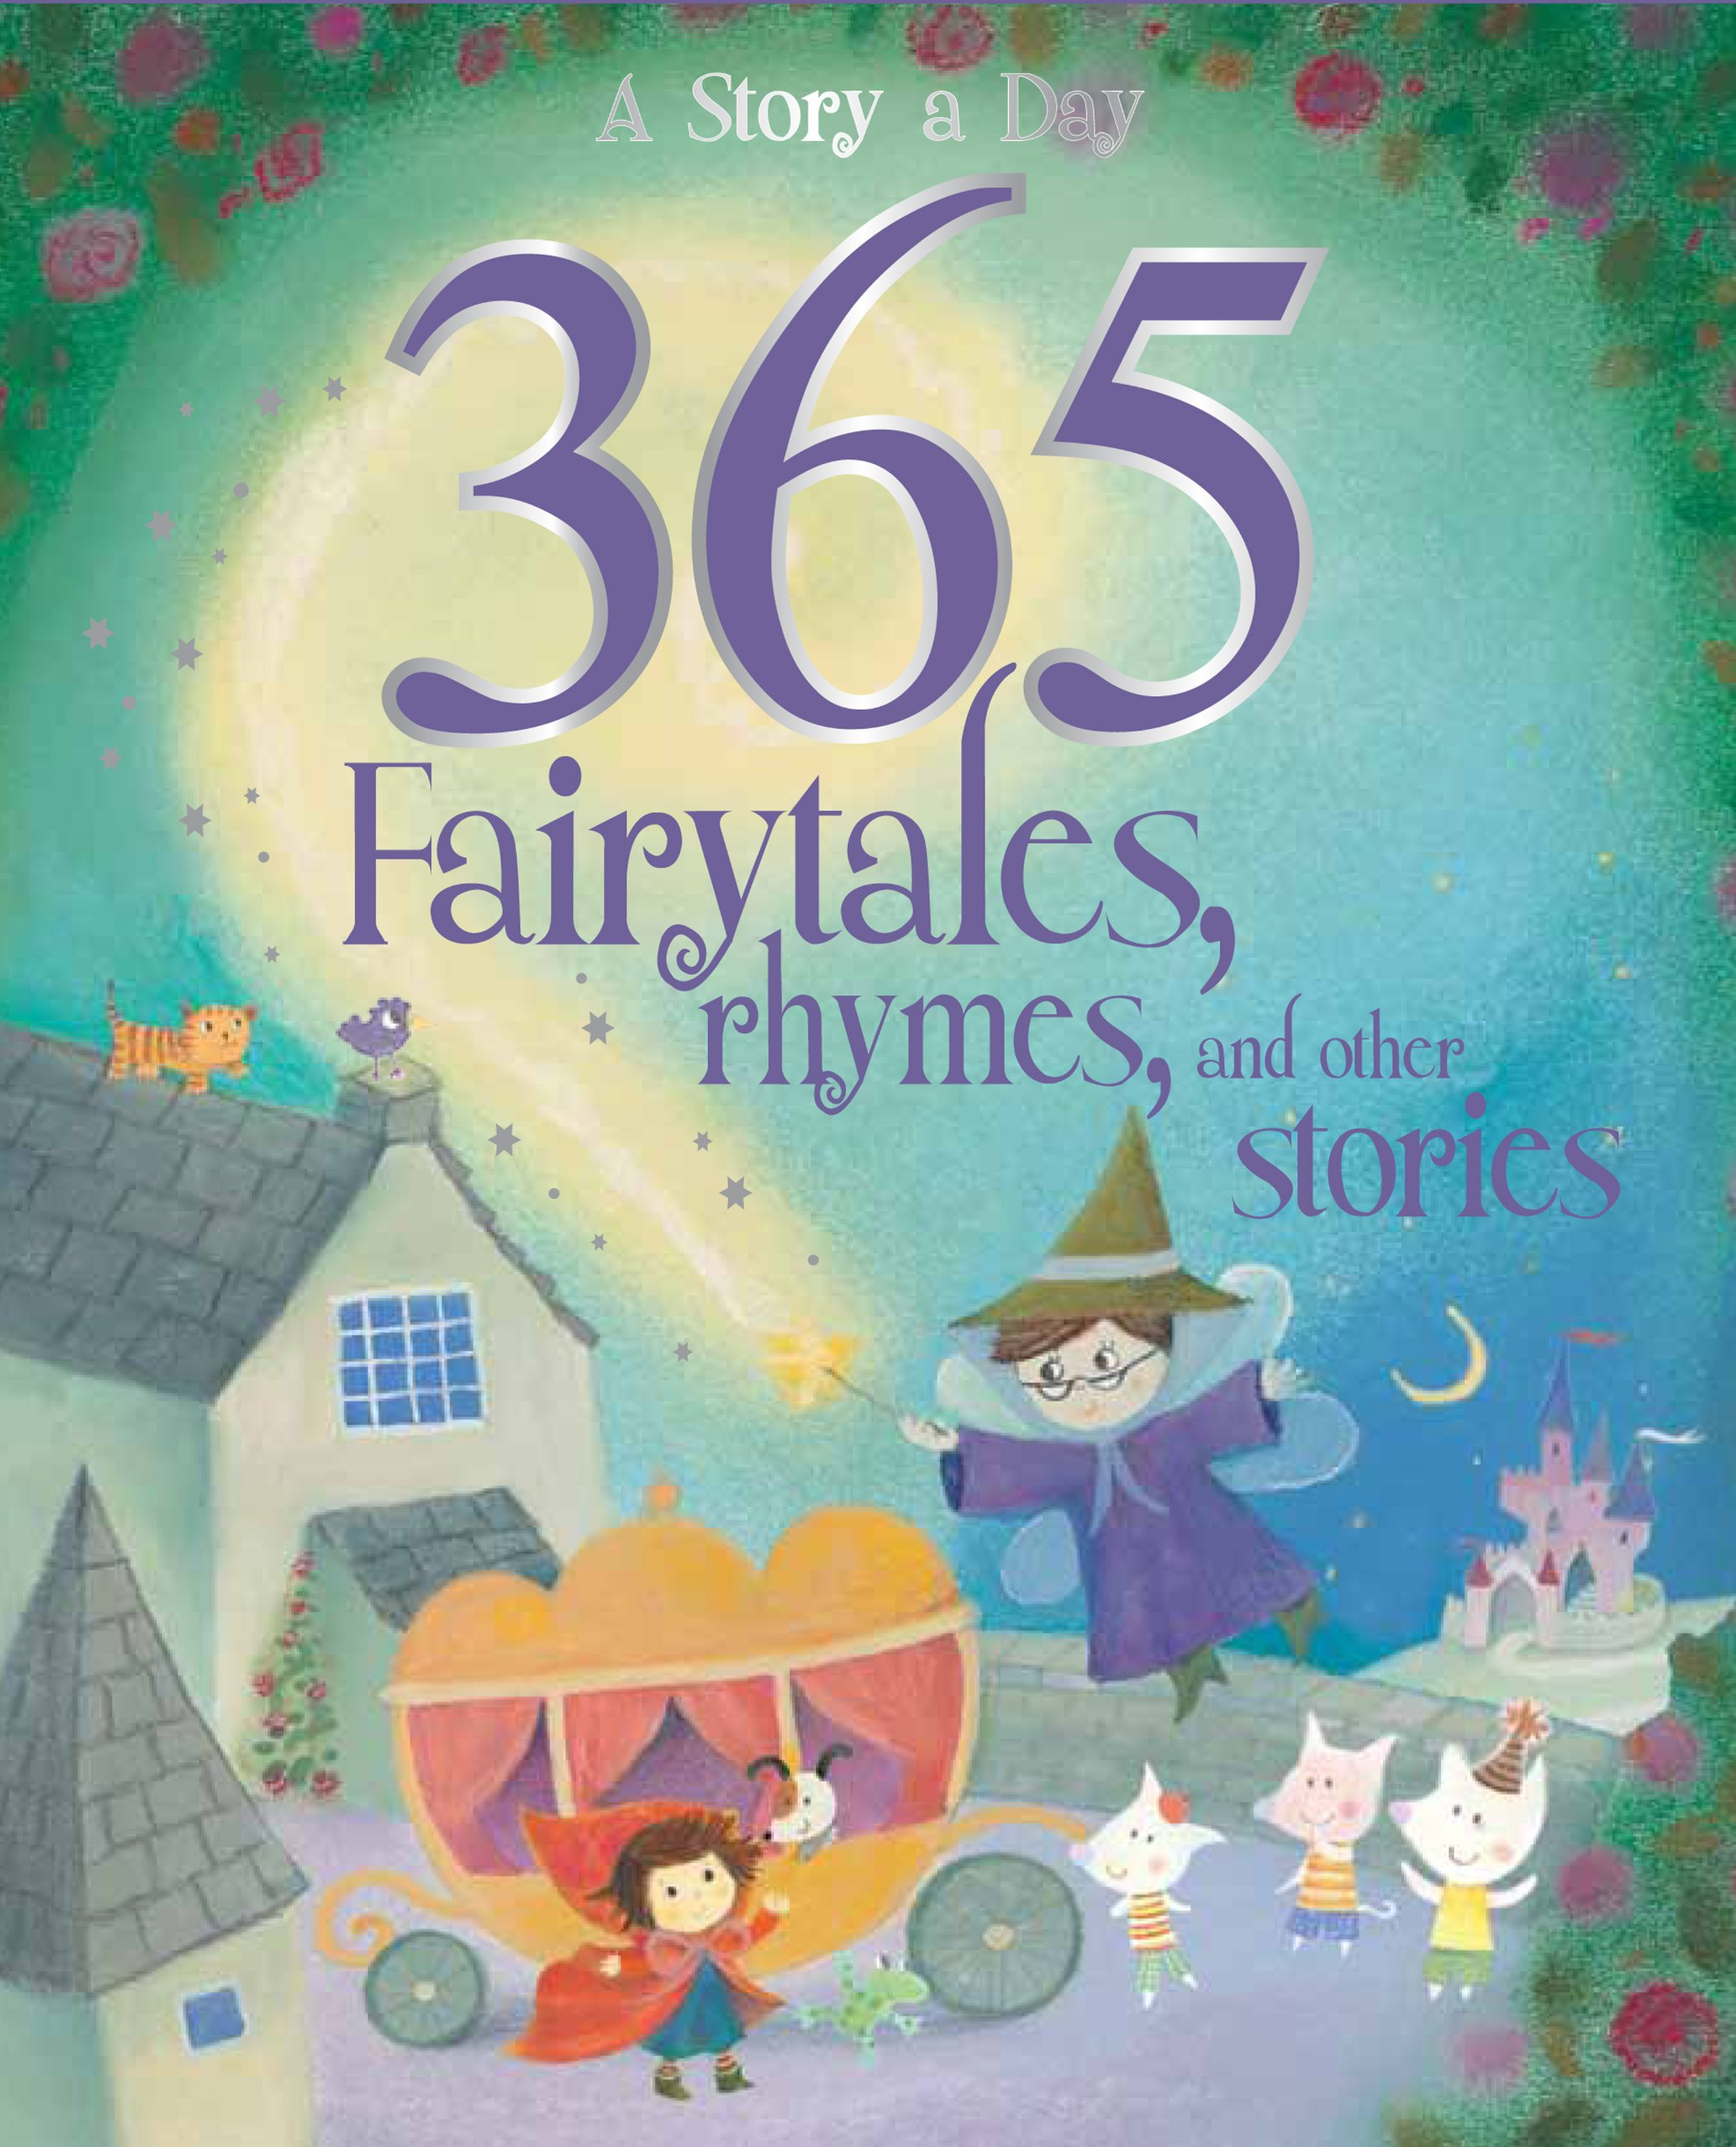 Uncategorized Fairy Tale Stories For Kids fairy tale books for kids tales 365 a story day